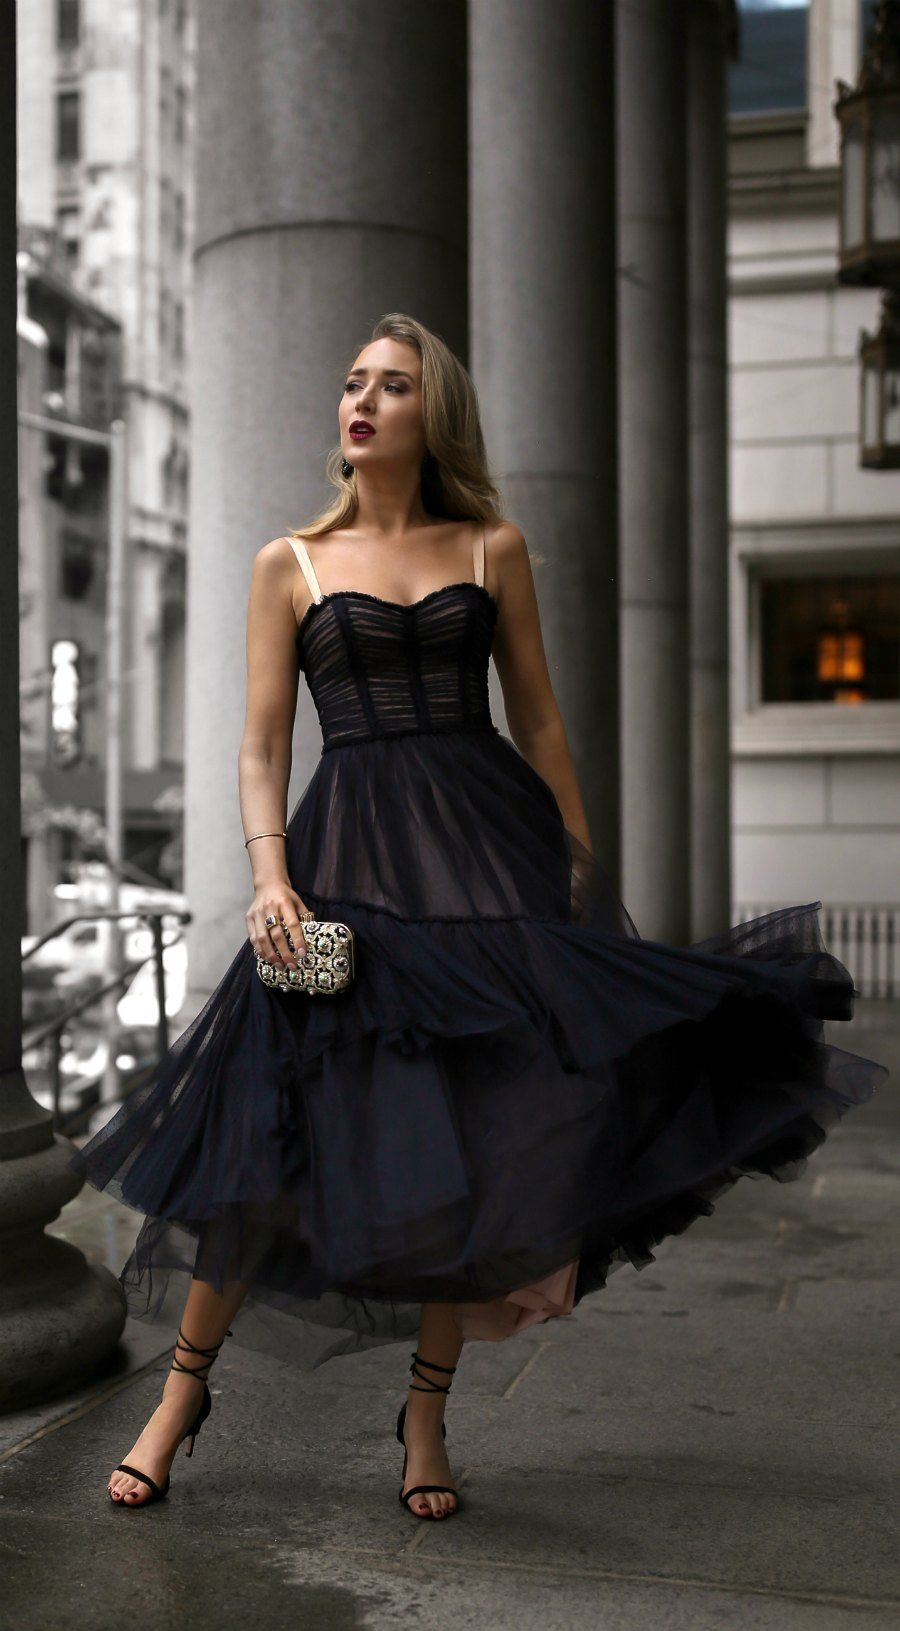 30 Dresses In 30 Days Day 19 Charity Gala Black Lace Tulle Bodice Style Flowy Midi Dress Little Black Dress Outfit Fashion Classy Wedding Guest Dresses [ 1631 x 900 Pixel ]